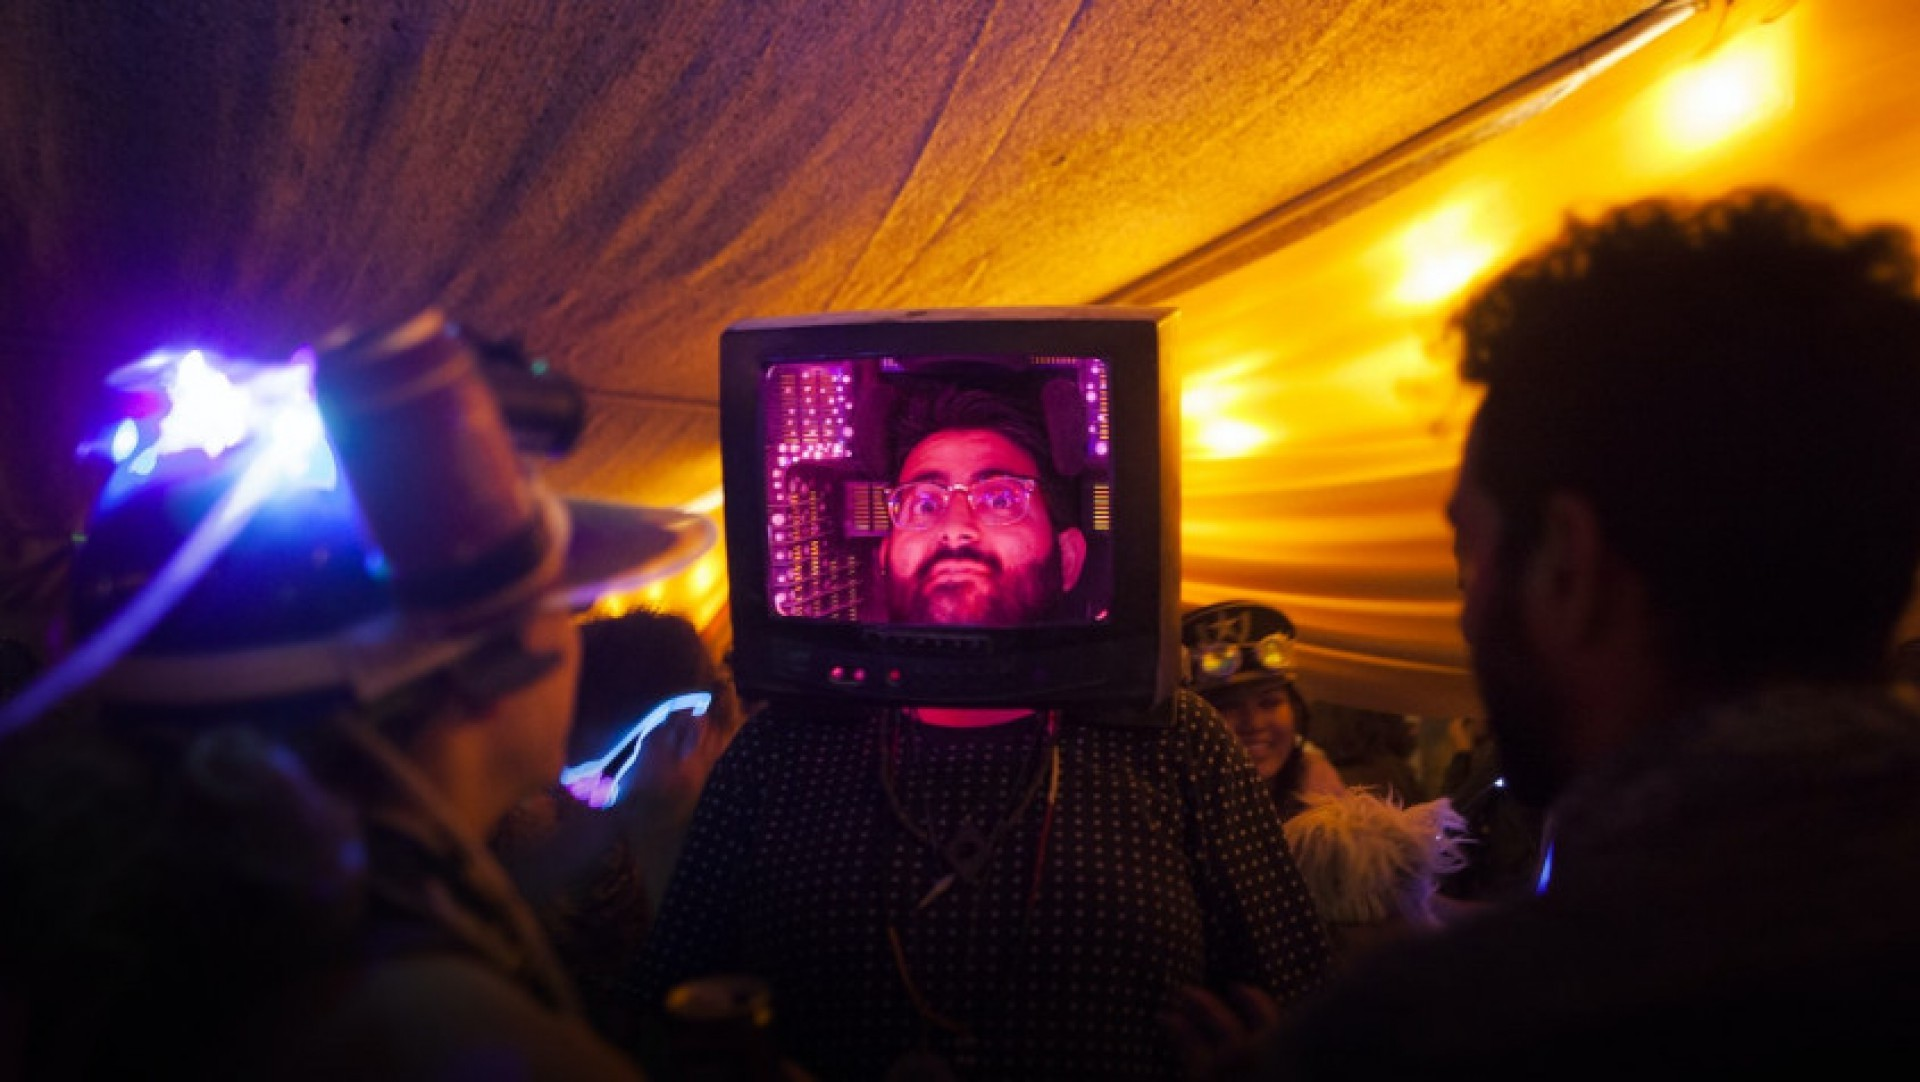 How is AI Changing the Way We Experience Watching TV